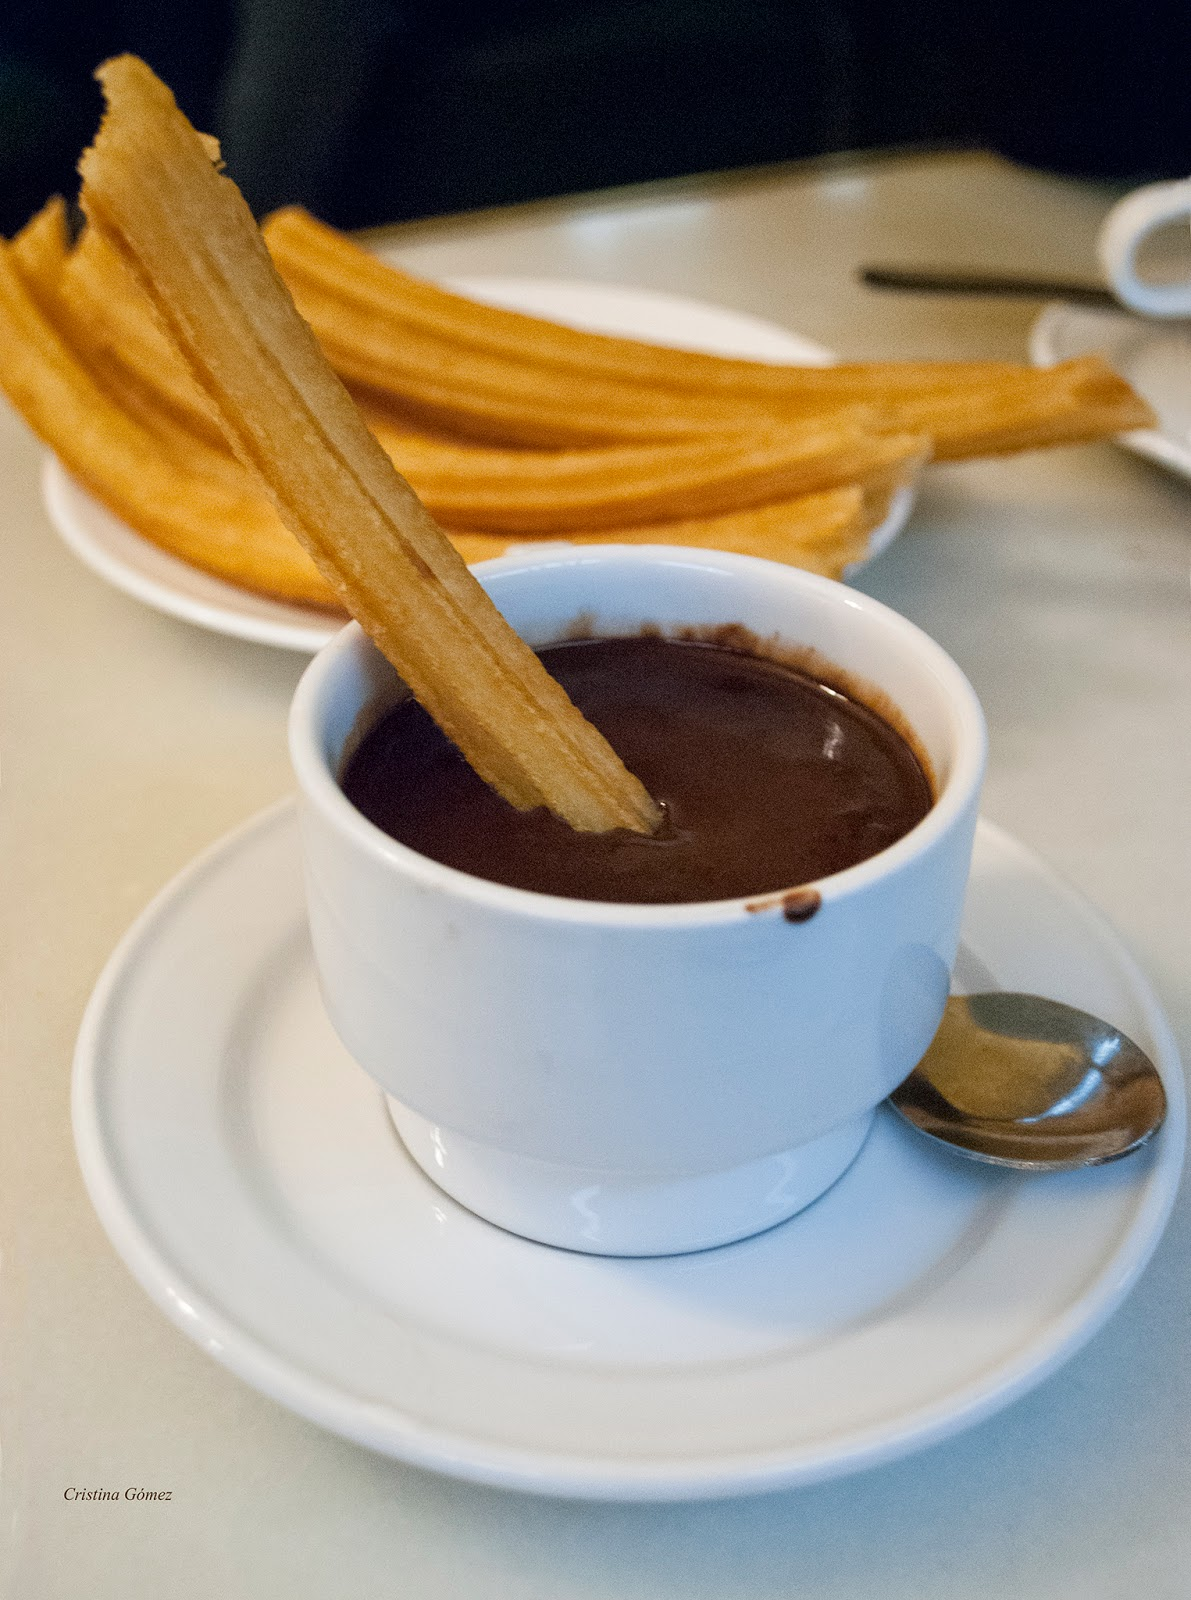 chocolateria san gines madrid chocolate churros